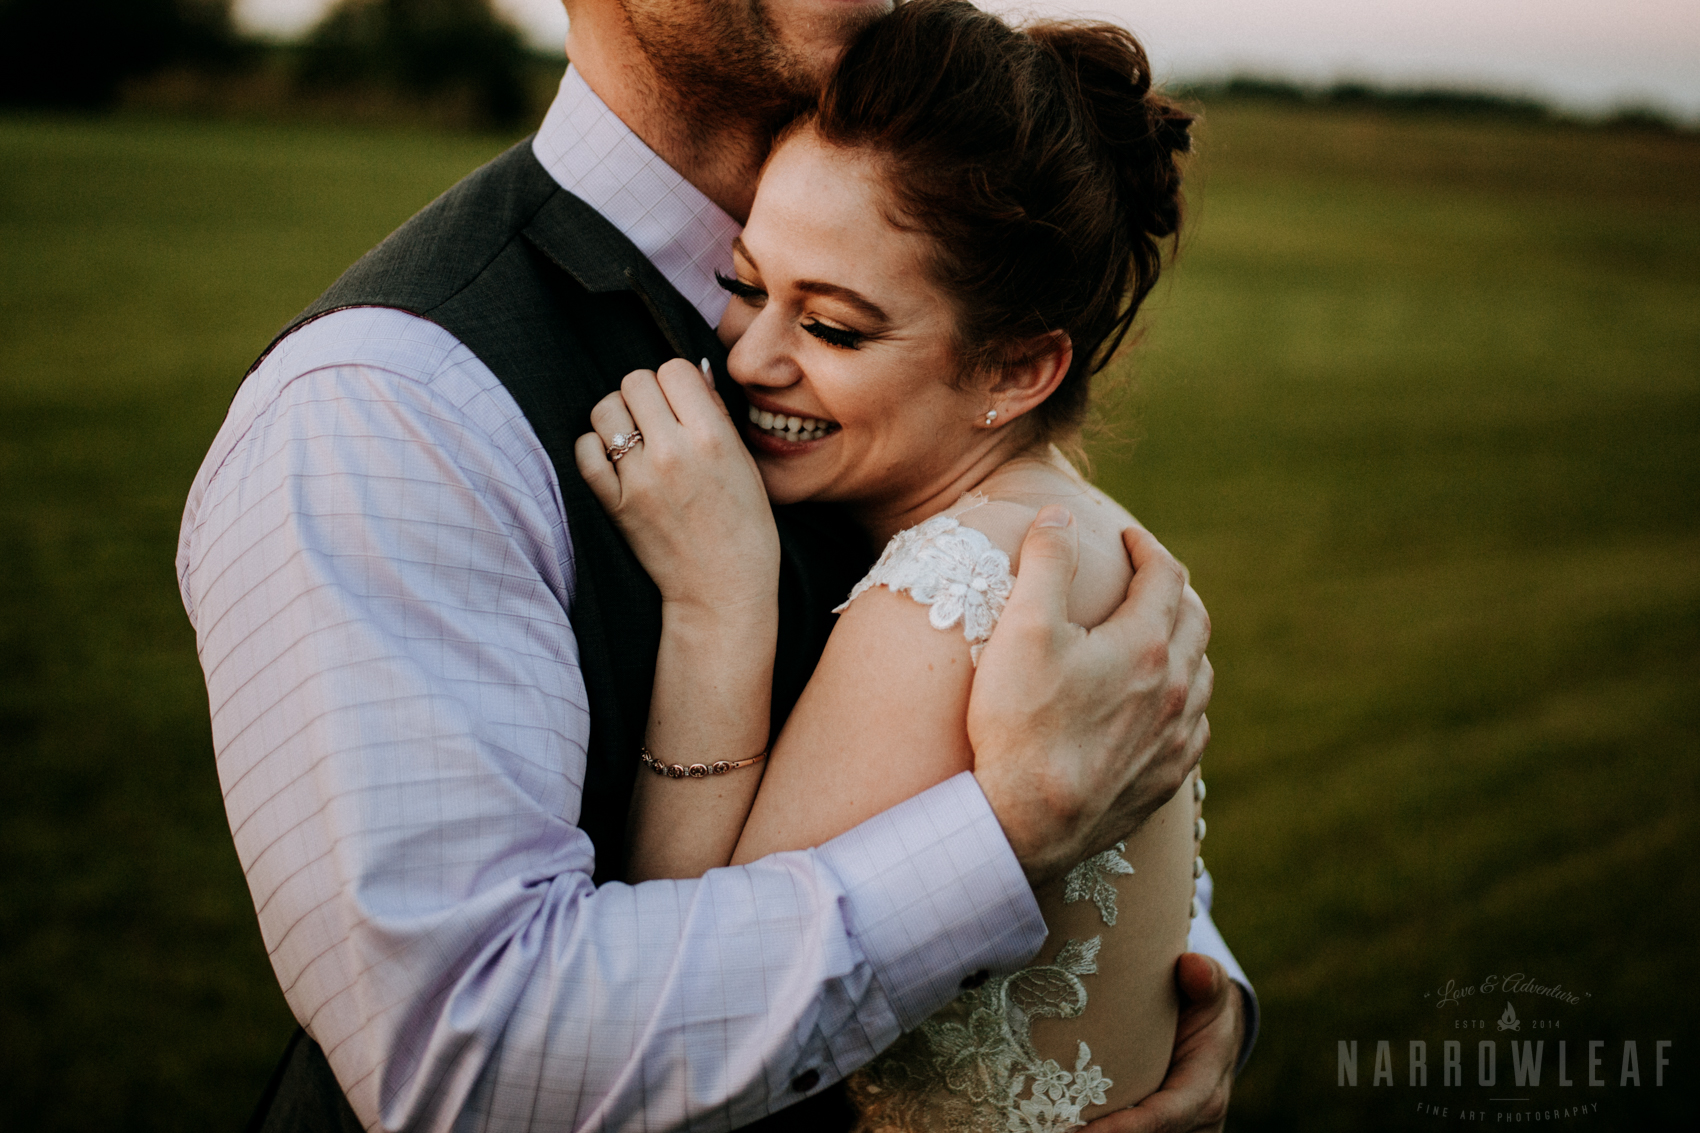 bride-groom-romantic-sunset-photos-rustys-hitching-post-event-center-new-richmond-wi-61.jpg